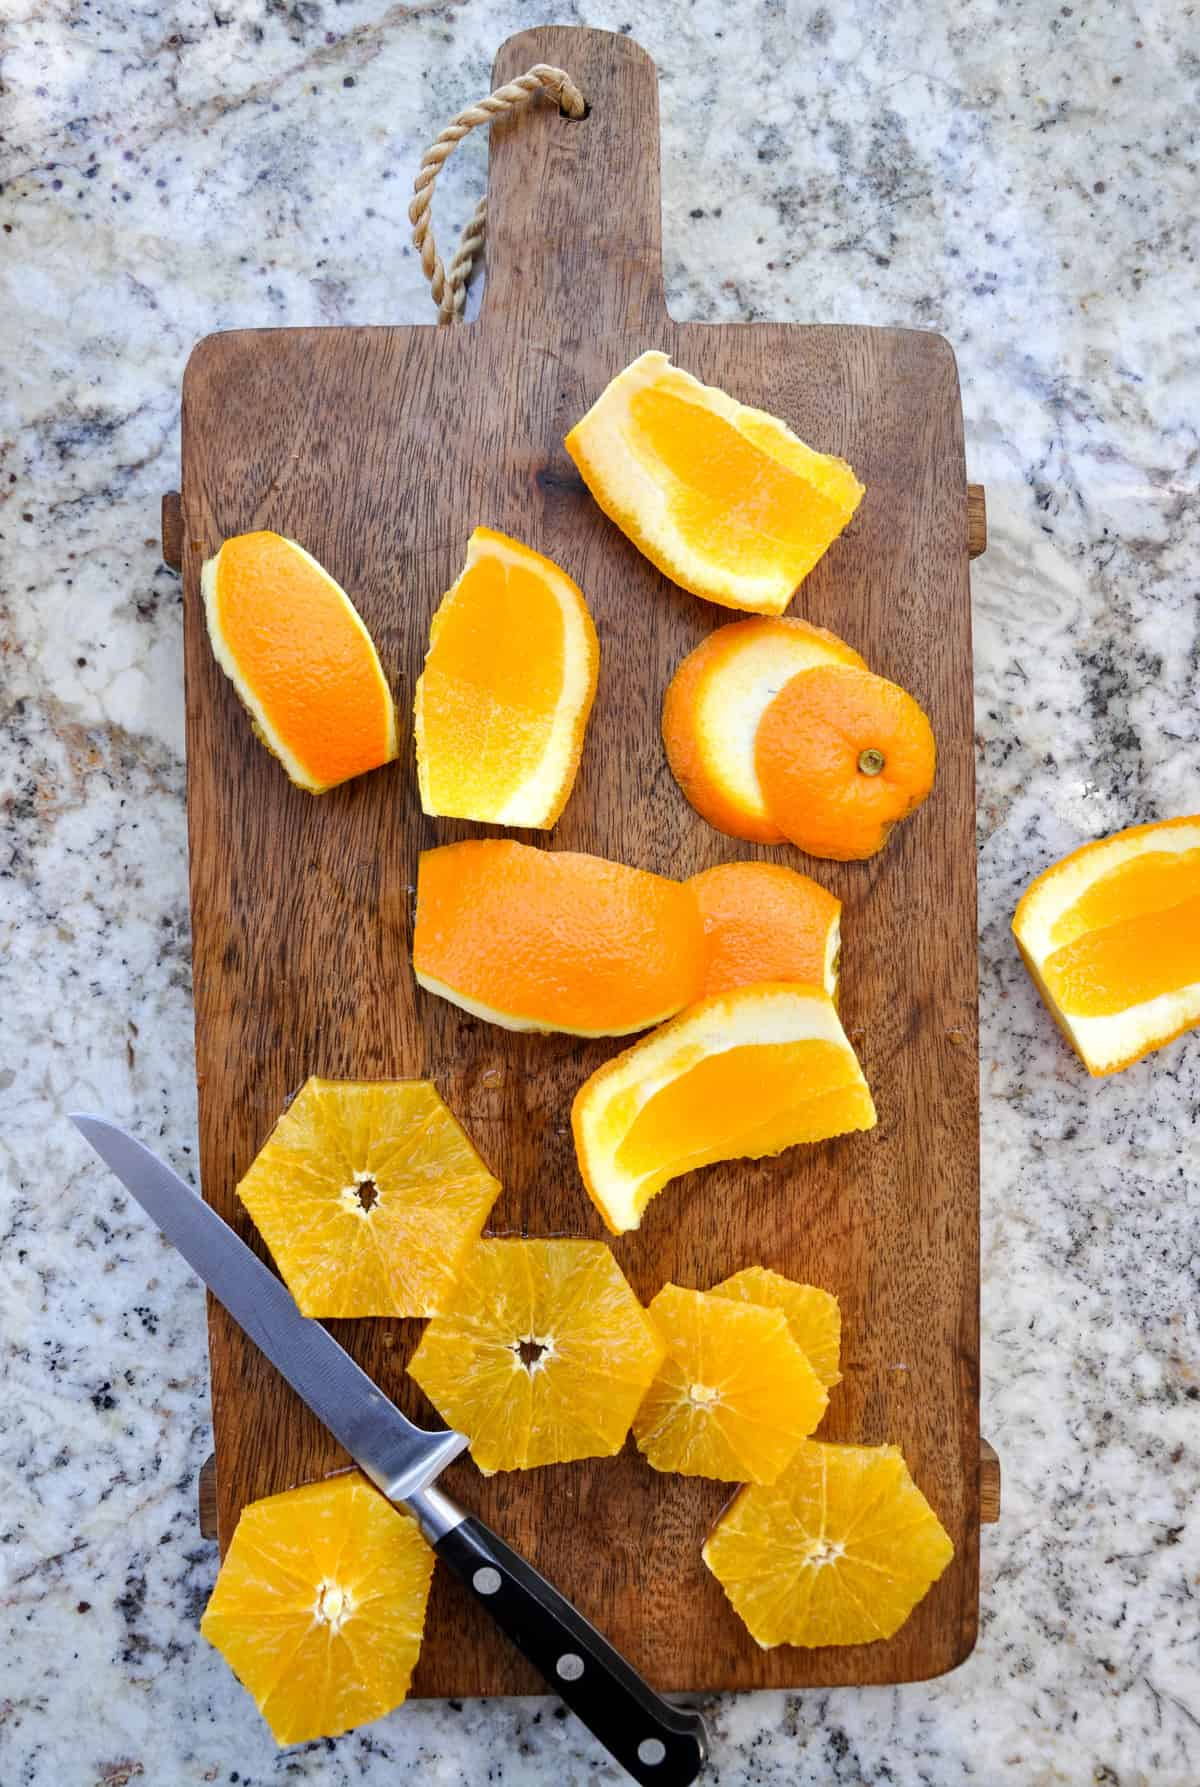 Citrus sliced up on a cutting board